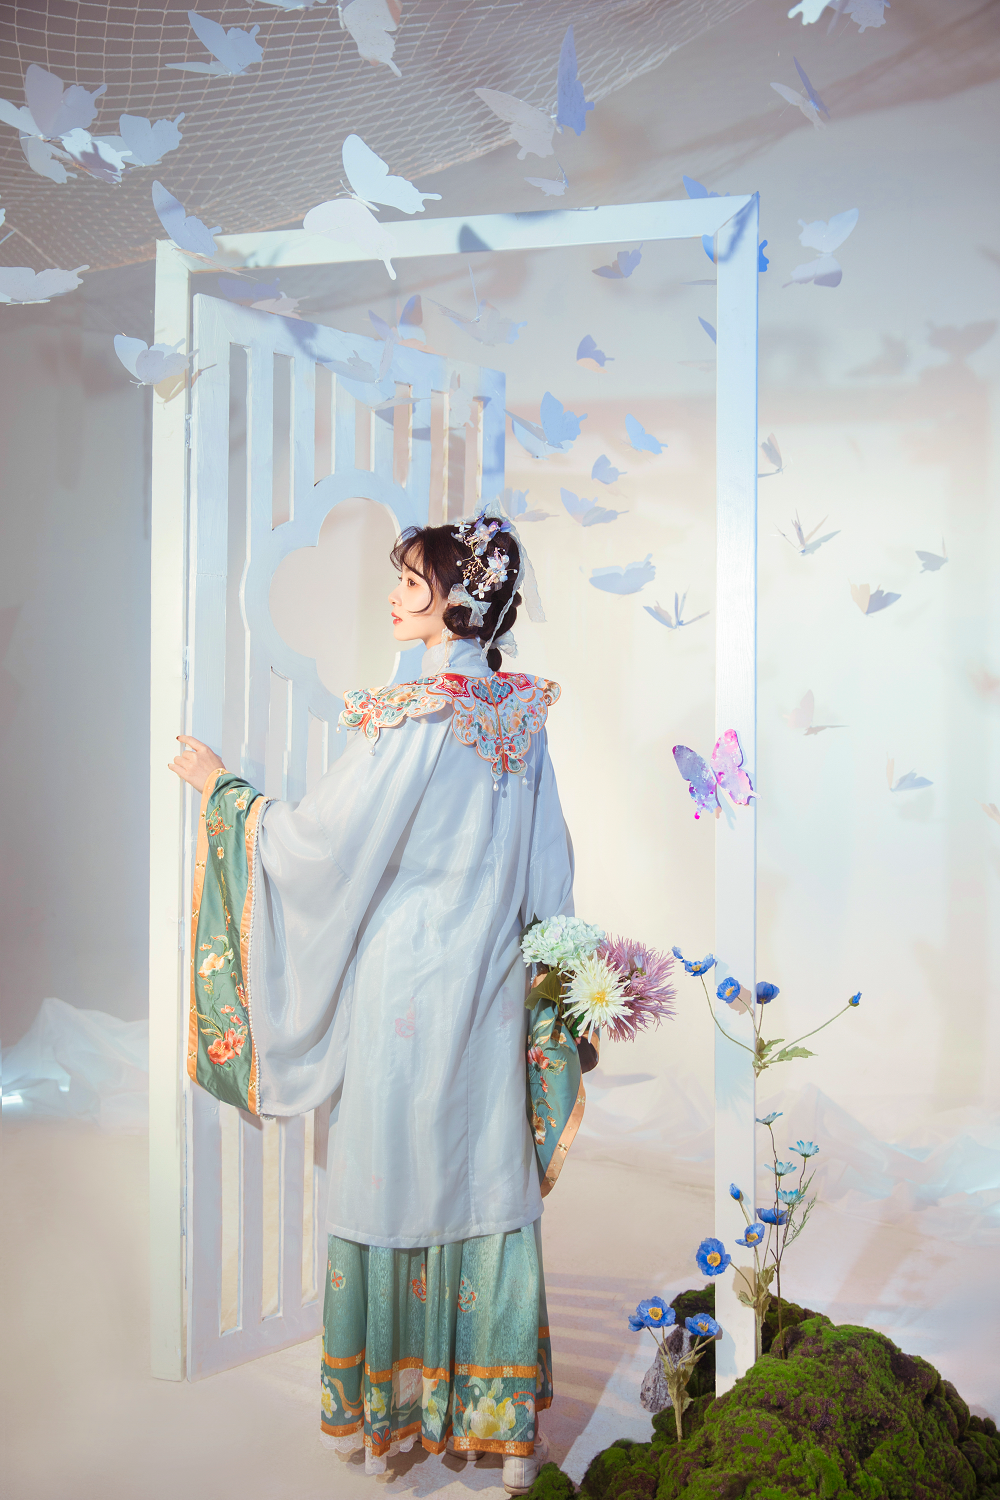 Handmade Embroidery Floral Women Dress Vintage Chinese Hanfu Suit Girls Cosplay Costume 2 Pieces Set Pleated Skirt - DIELING